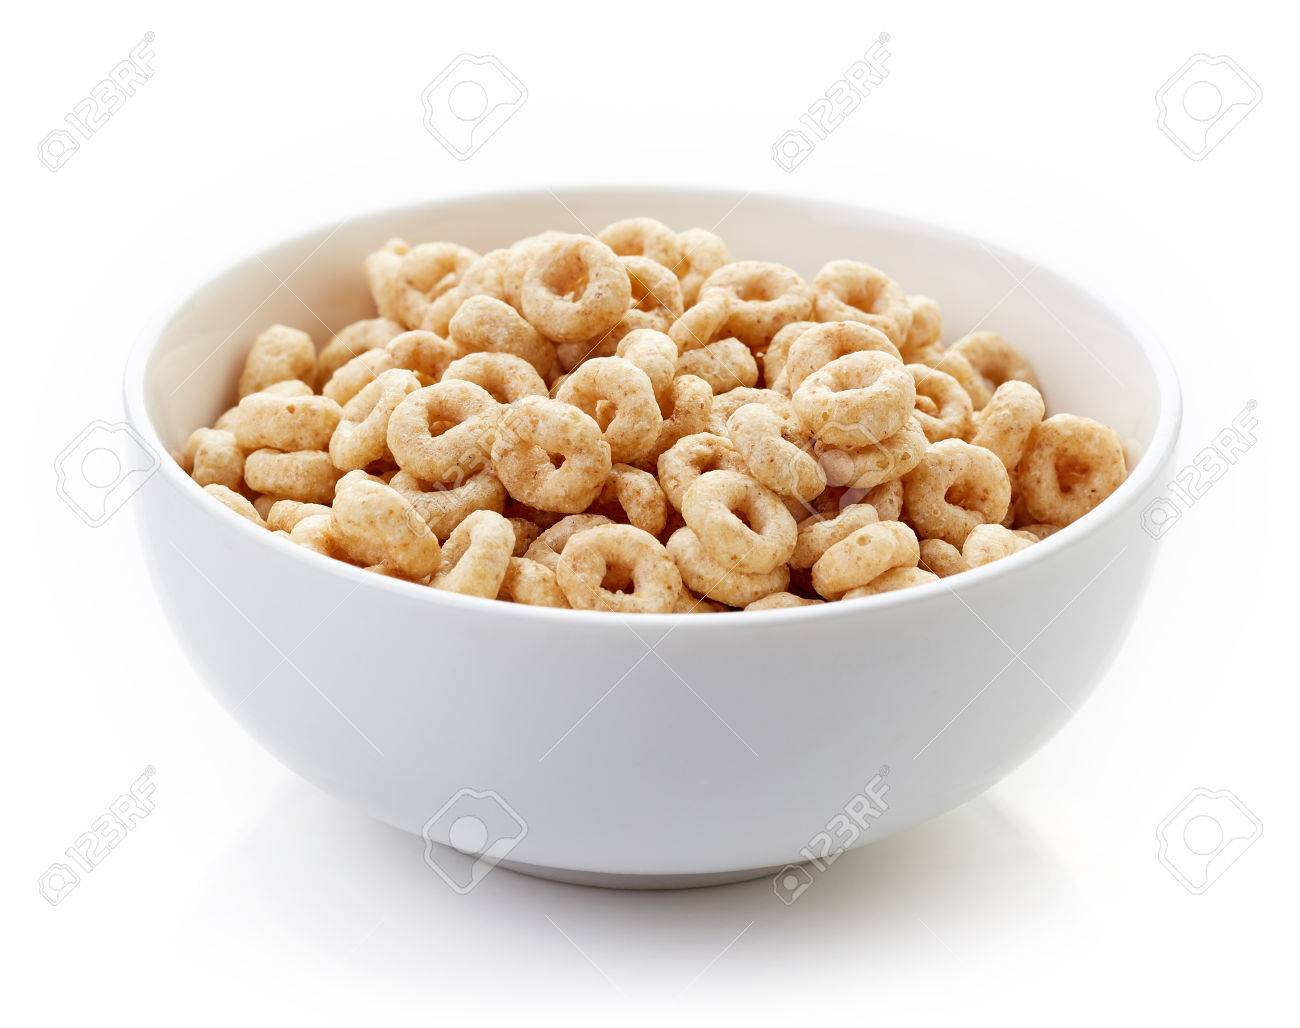 Bowl of Whole Grain Cheerios Cereal isolated on white background - 61085523